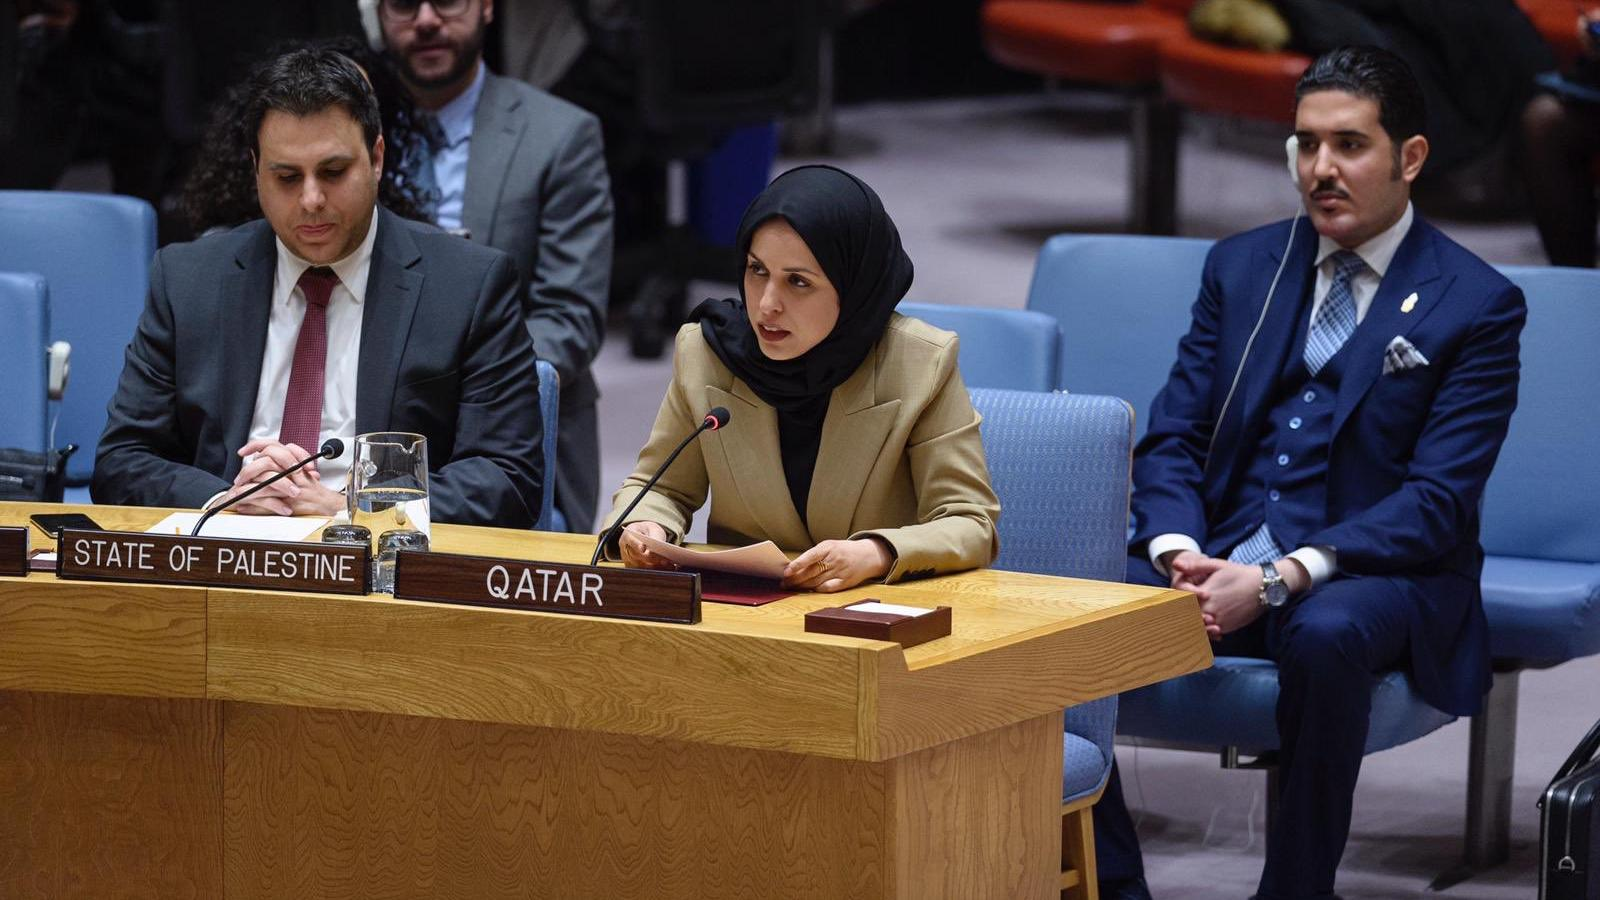 Qatar reiterates call for peaceful settlement of Gulf crisis